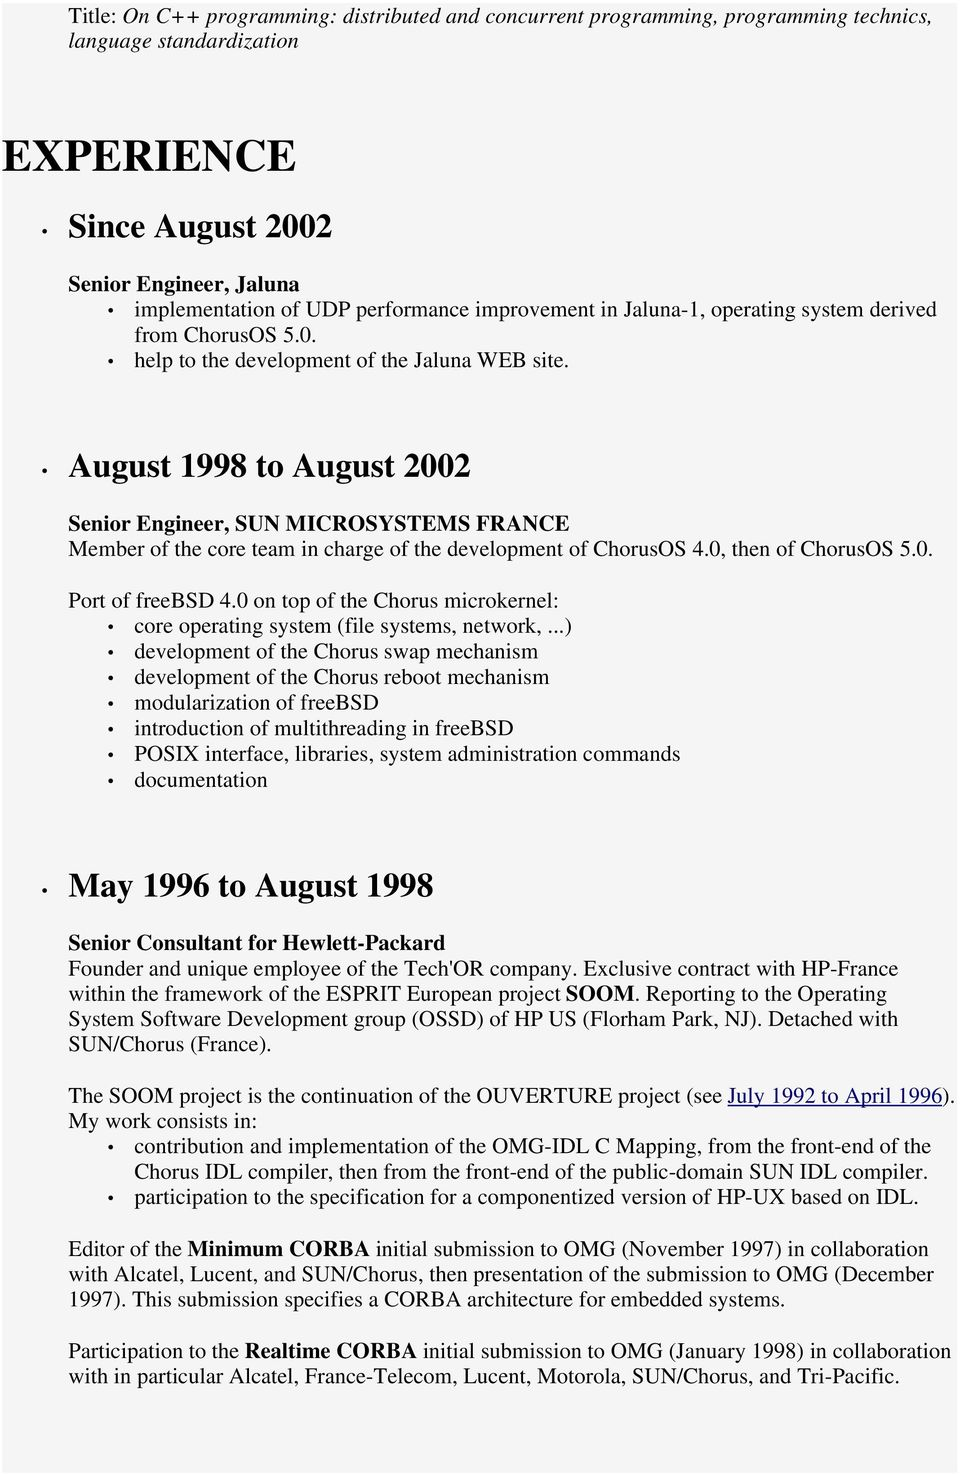 August 1998 to August 2002 Senior Engineer, SUN MICROSYSTEMS FRANCE Member of the core team in charge of the development of ChorusOS 4.0, then of ChorusOS 5.0. Port of freebsd 4.